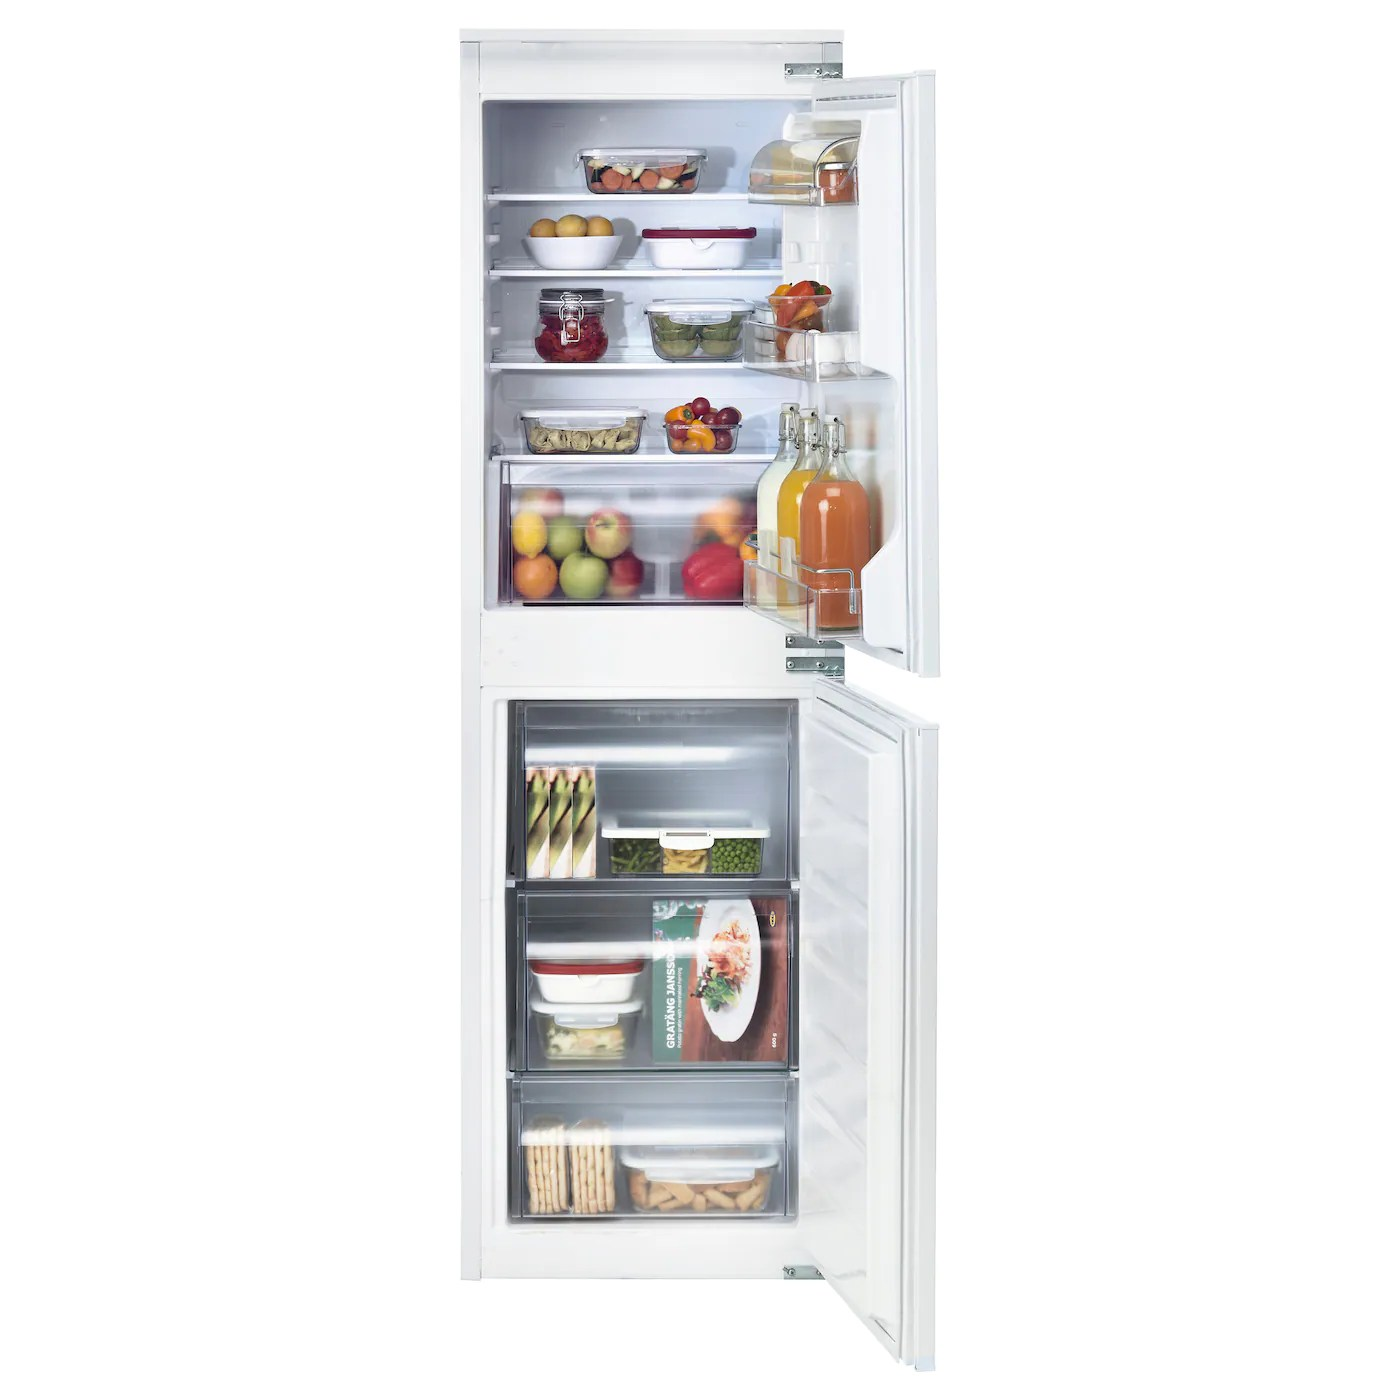 Fridge Freezer Isigt Integrated Fridge Freezer A White